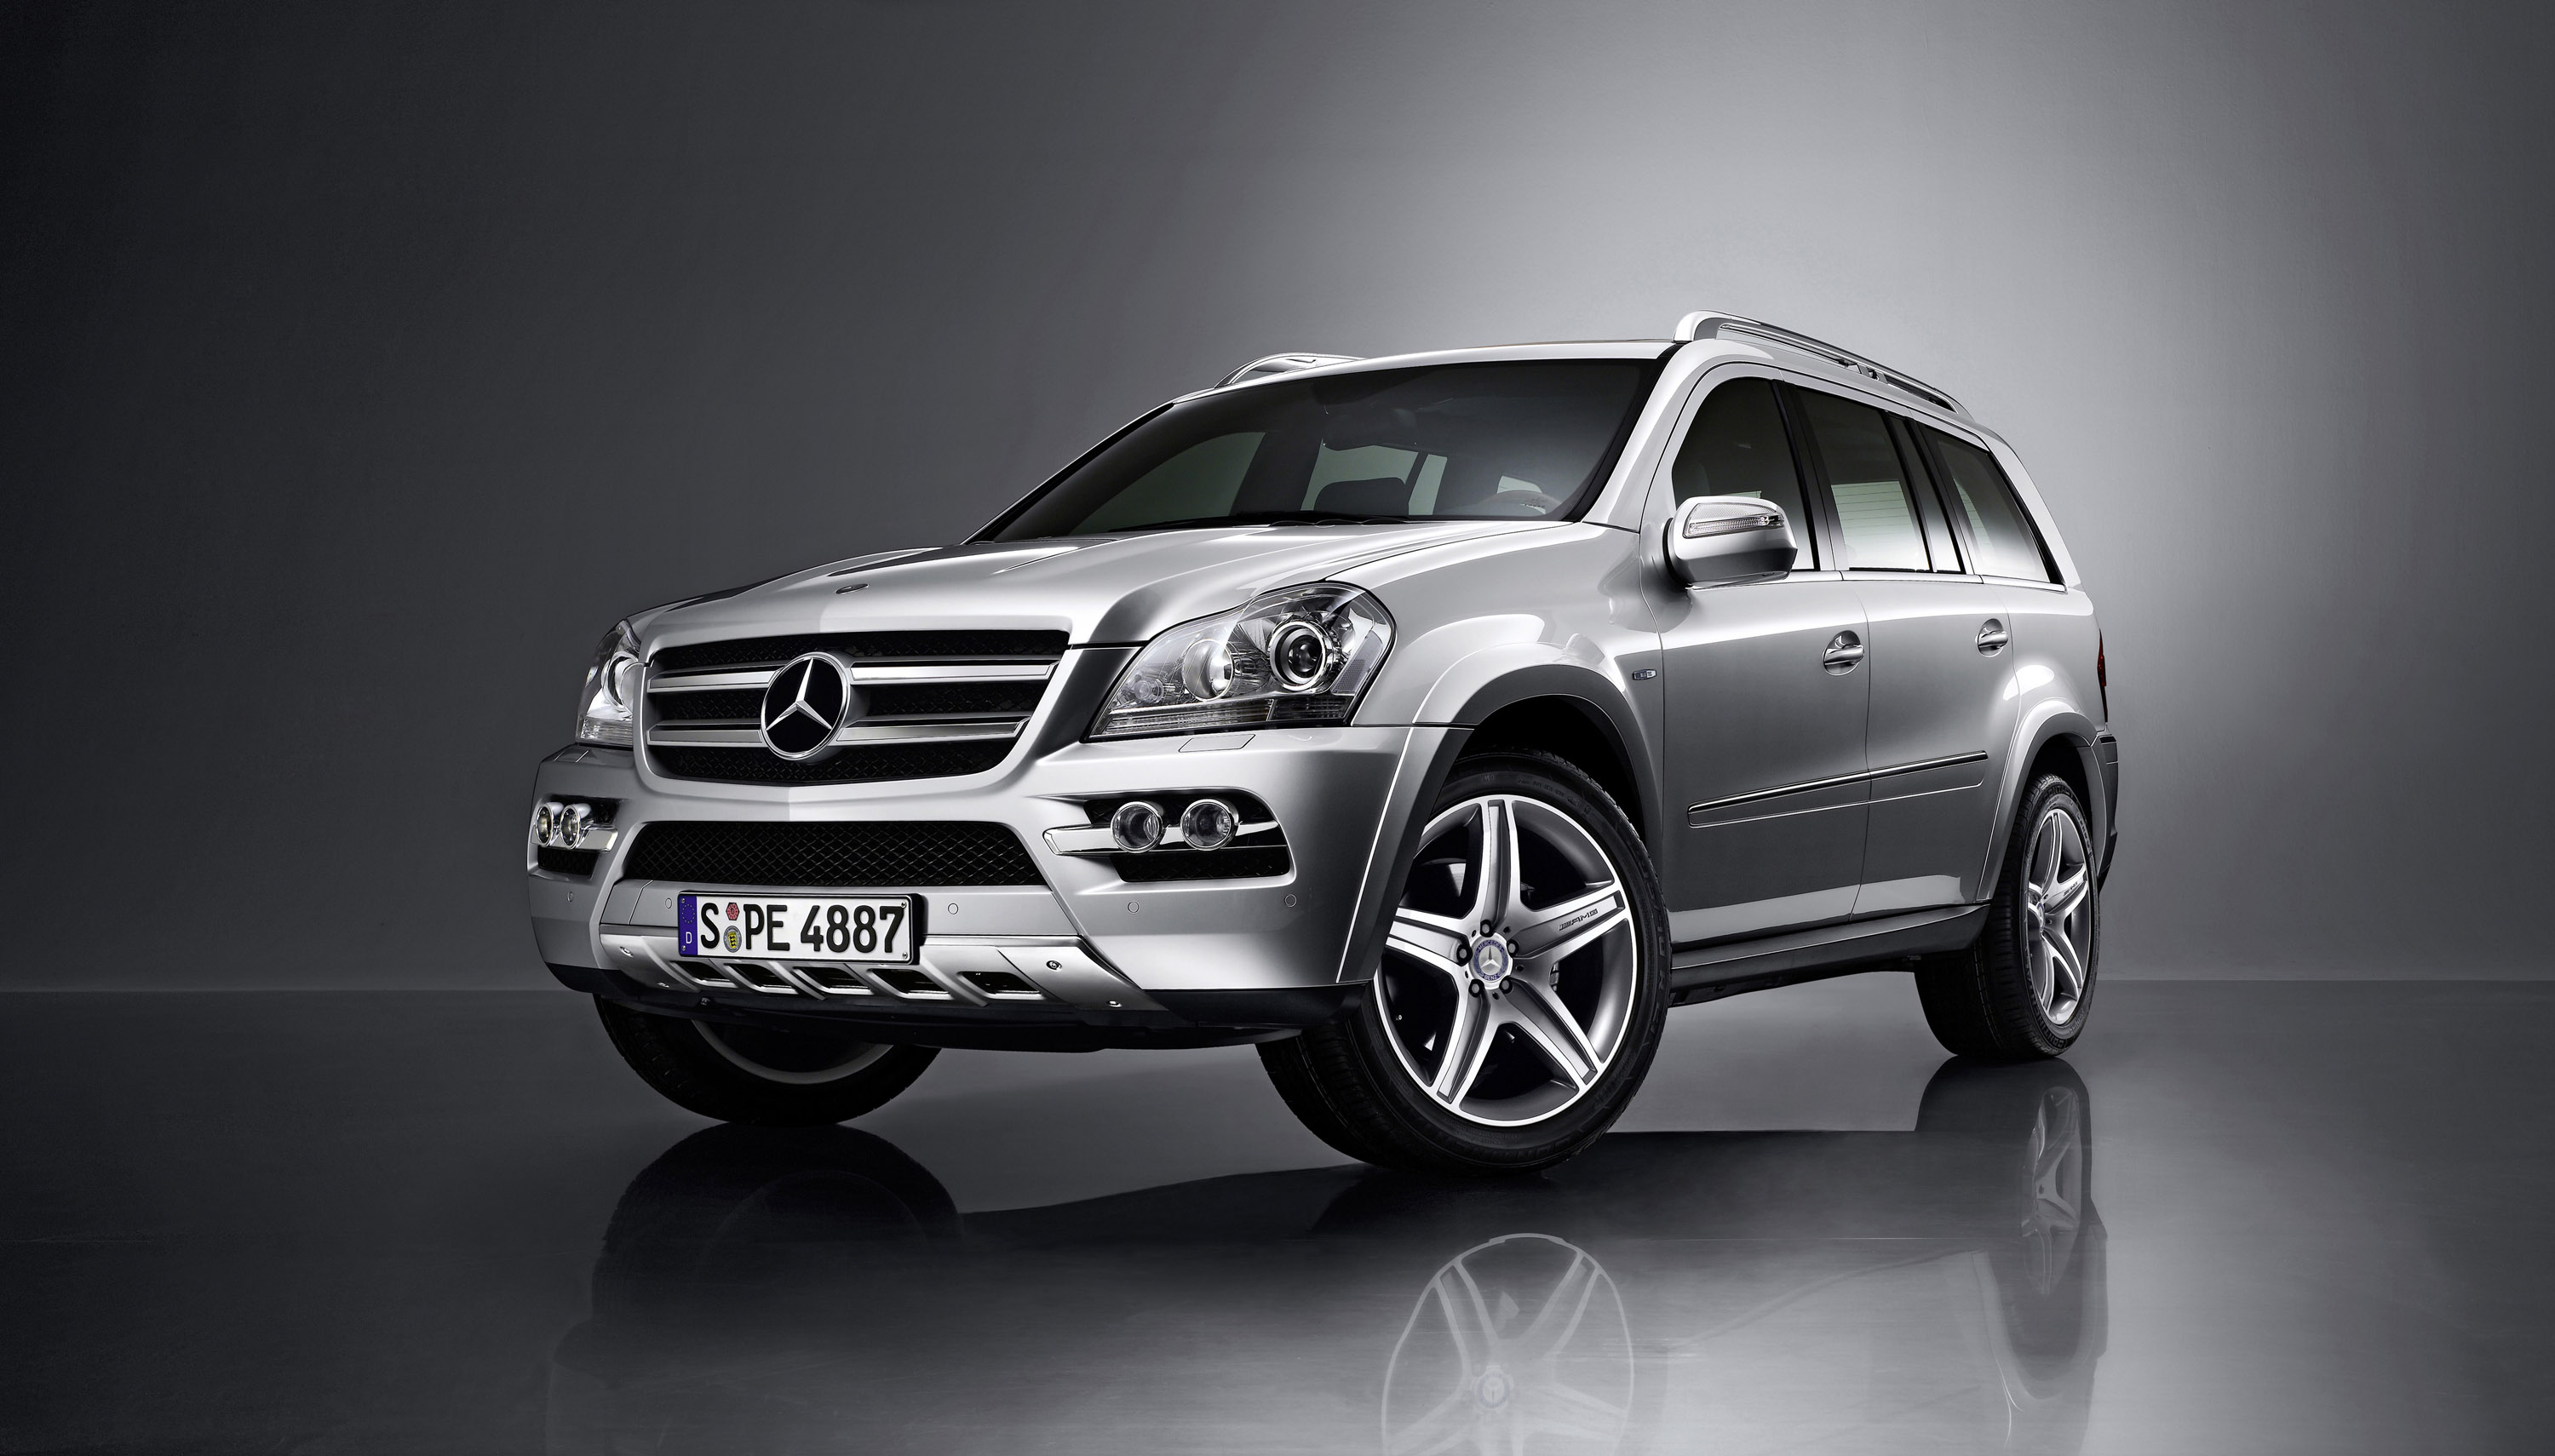 Image gallery 2009 suv for Mercedes benz suv 2009 price